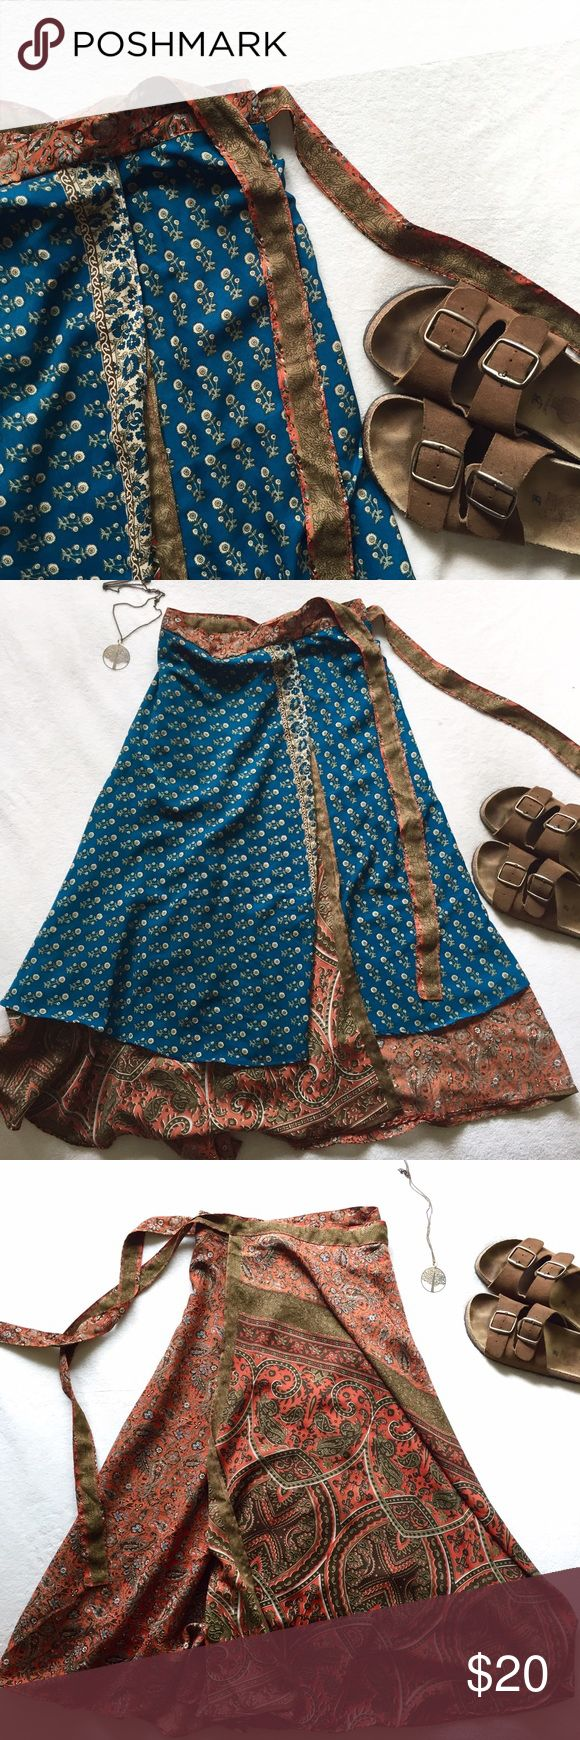 "Reversible Boho Hippie Wrap Skirt So perfect for festival season! This is a wrap-style skirt that feels oh-so-wonderful swishing when you walk  silly material, no tag so I'm not 100% certain of fabric content  reversible, with gorgeous designs on both sides. I'm 5'4"" and this is a long midi/maxi length for me, and you can adjust the length by wearing it high waisted or at the hips. Waist is adjustable, but best for S/M. ⭐️skirt only⭐️ Skirts Maxi"